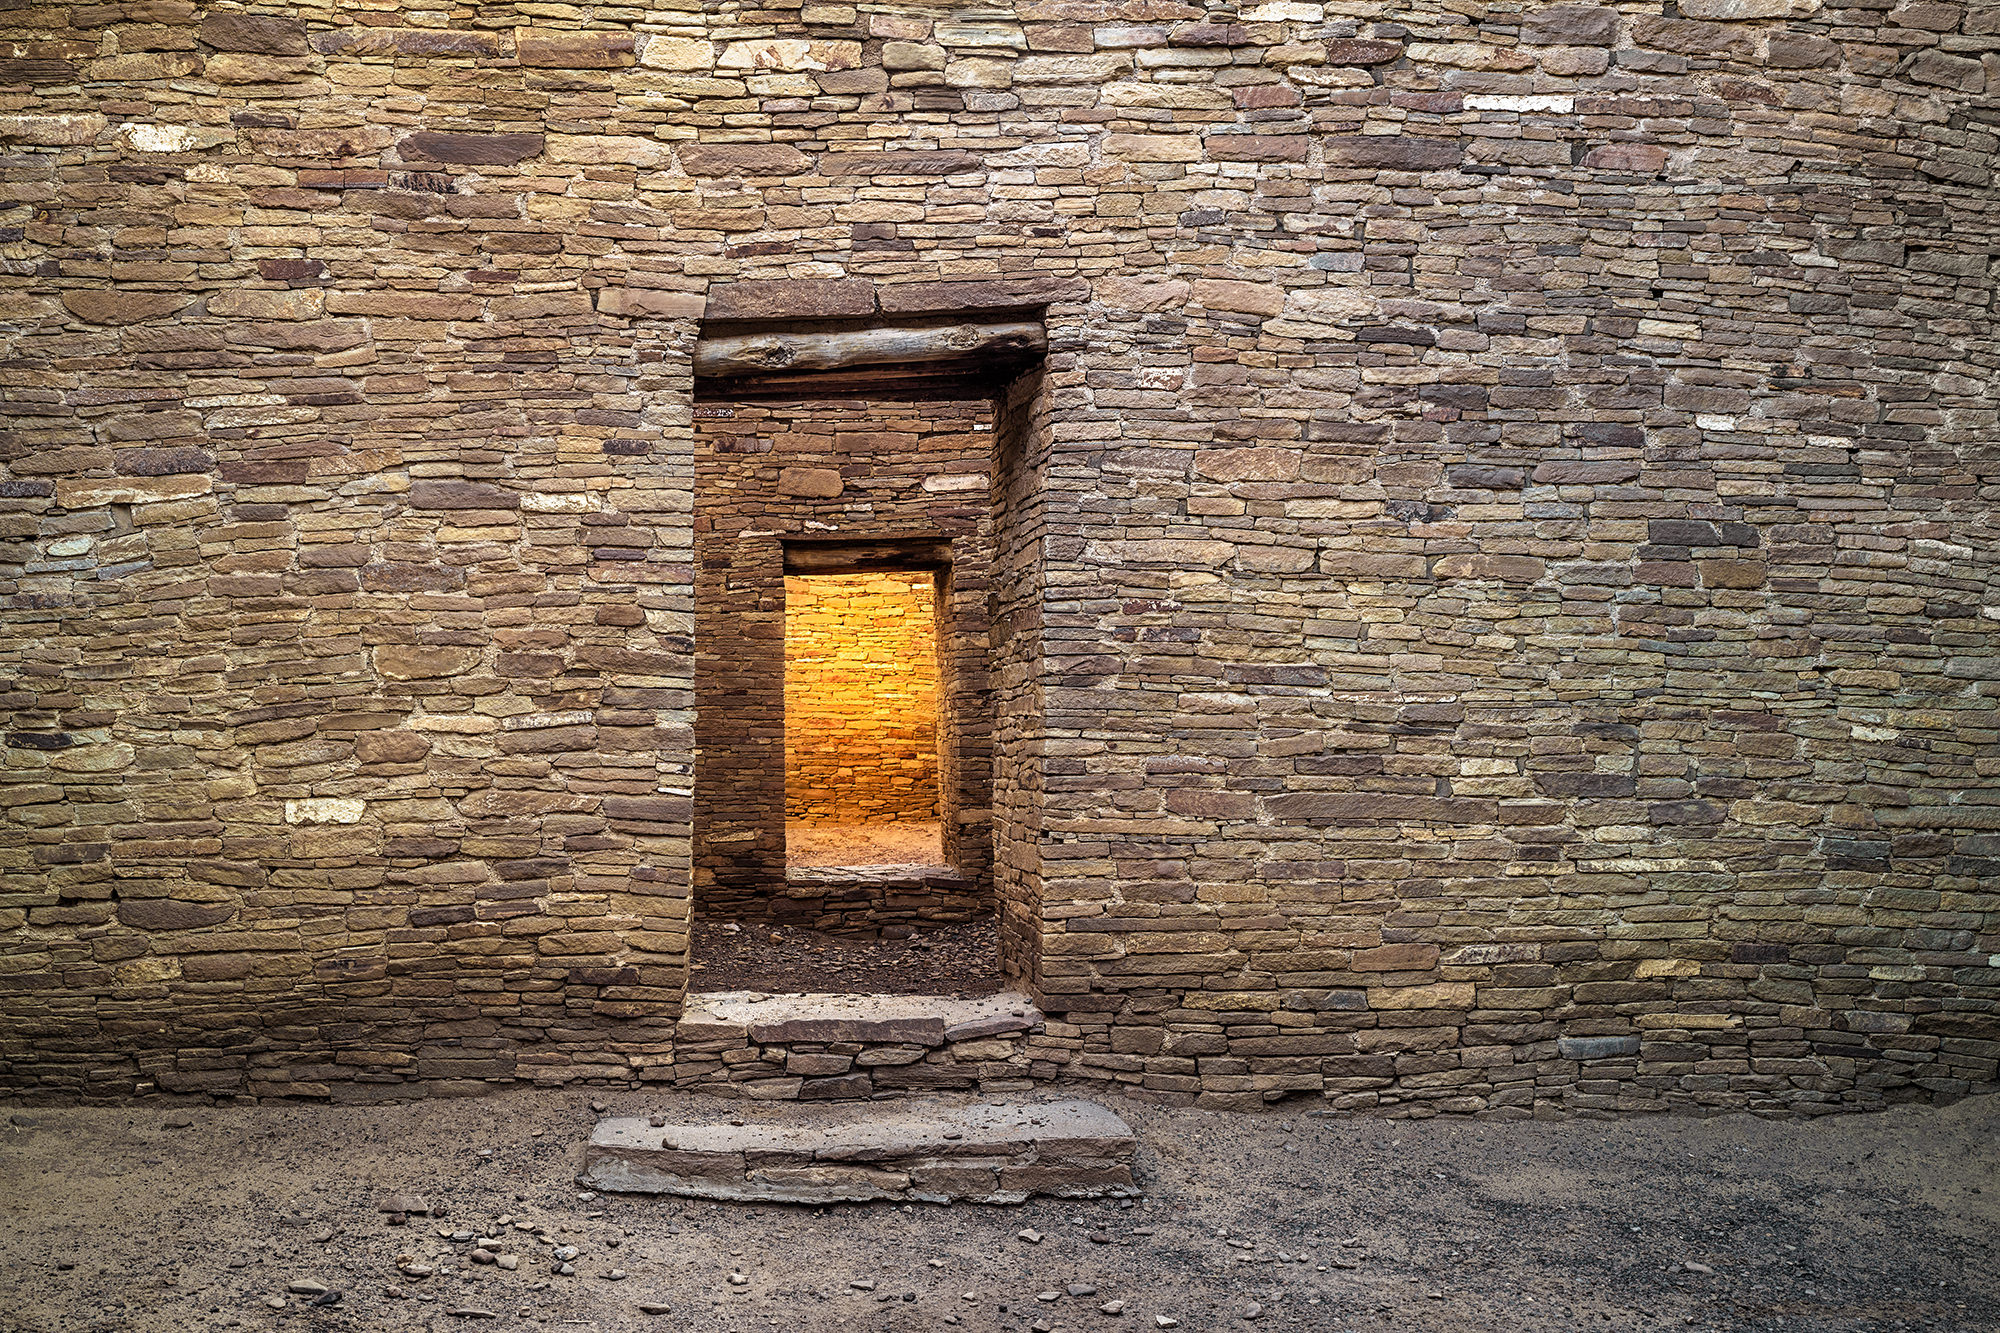 CHACO CANYON - Western New Mexico